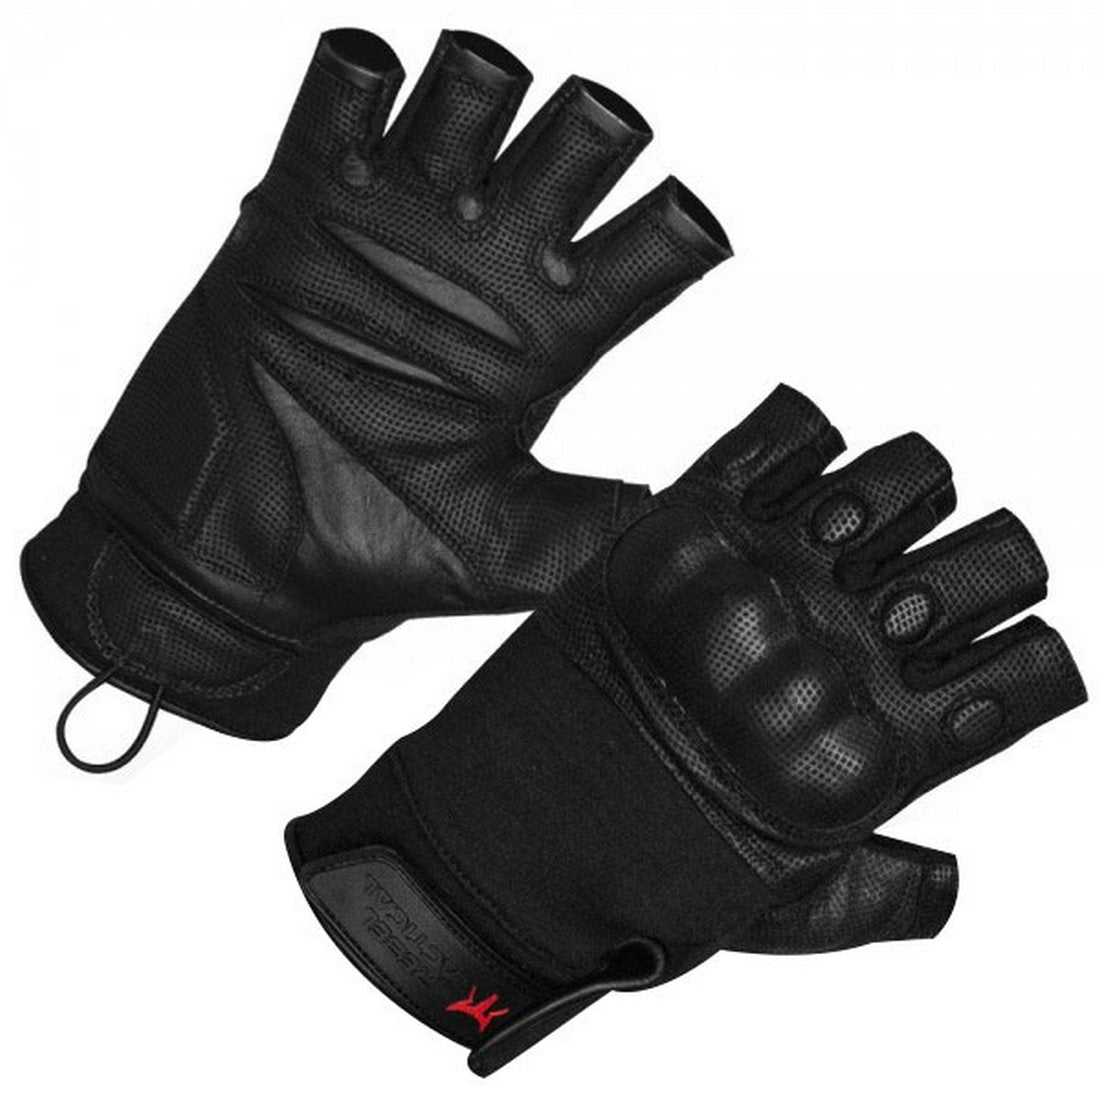 Rebel Tactical S.W.A.T. Force Half Finger Hard Knuckle Tactical Gloves - 2X-Large - Black